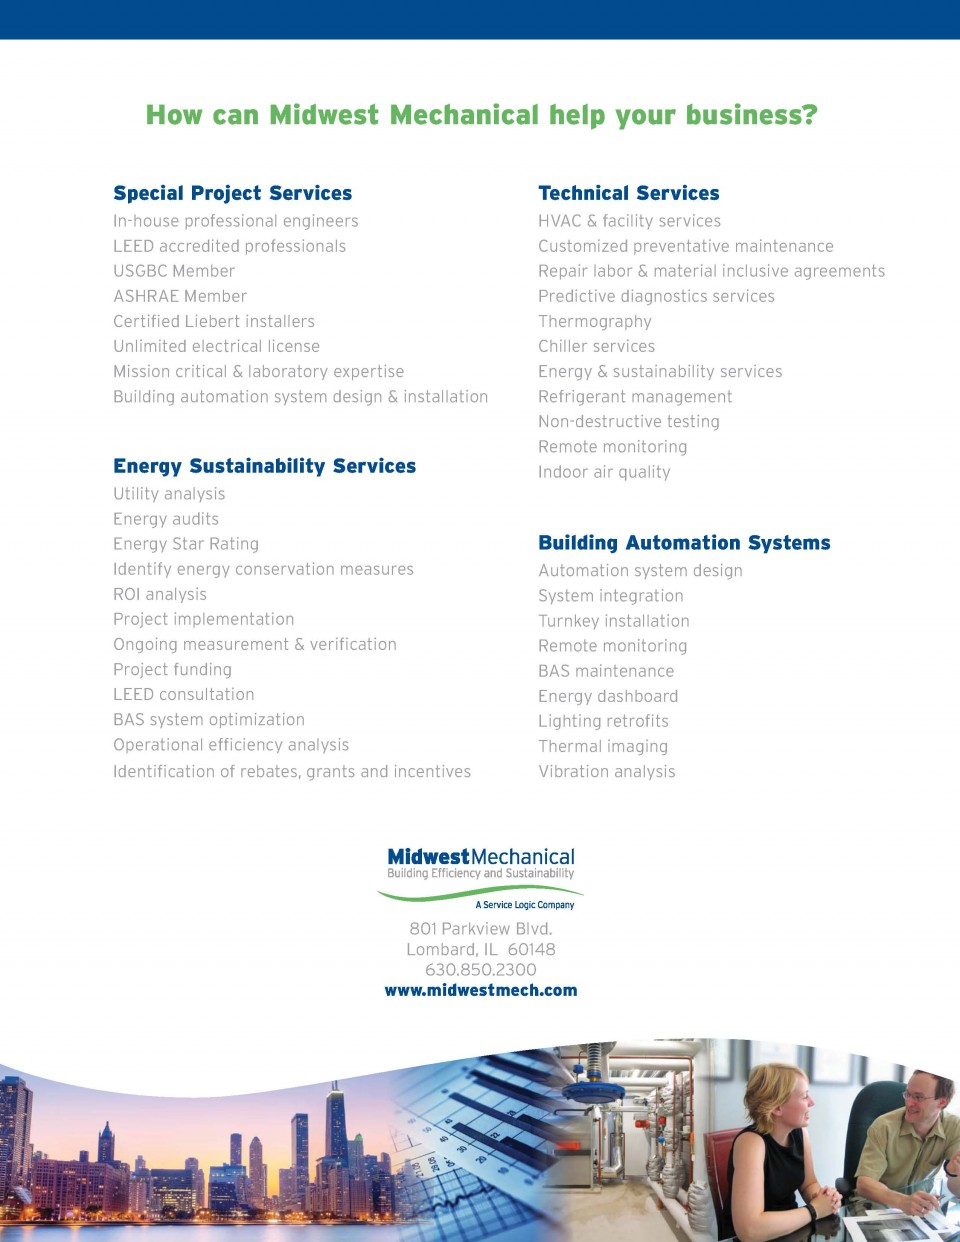 Midwest Mechanical Services Flyer Design and Printing